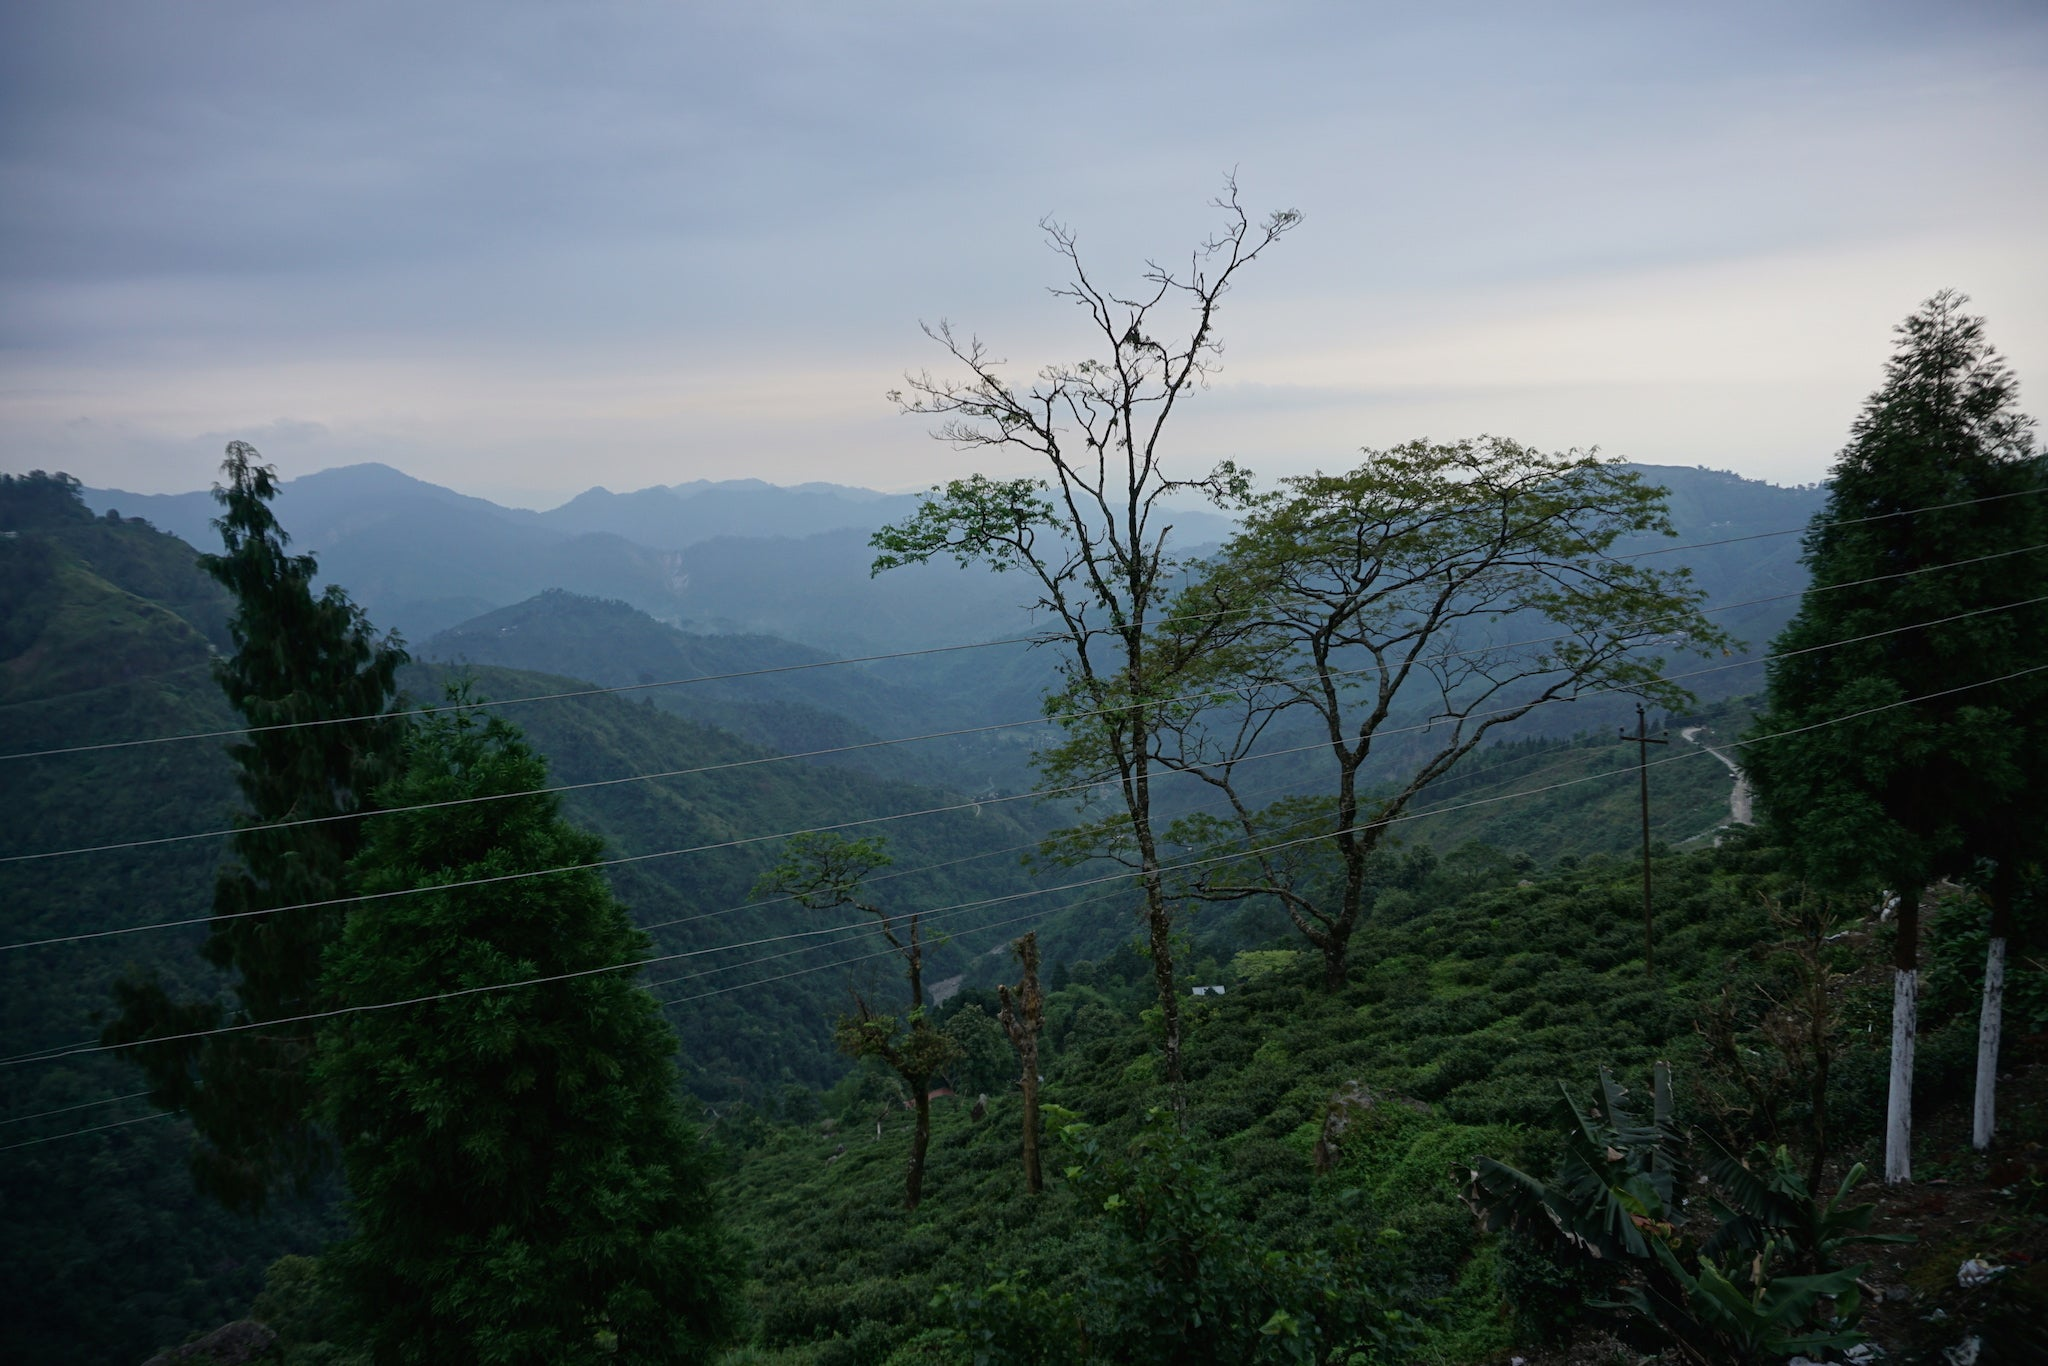 View from Giddapahar across Kurseong Valley